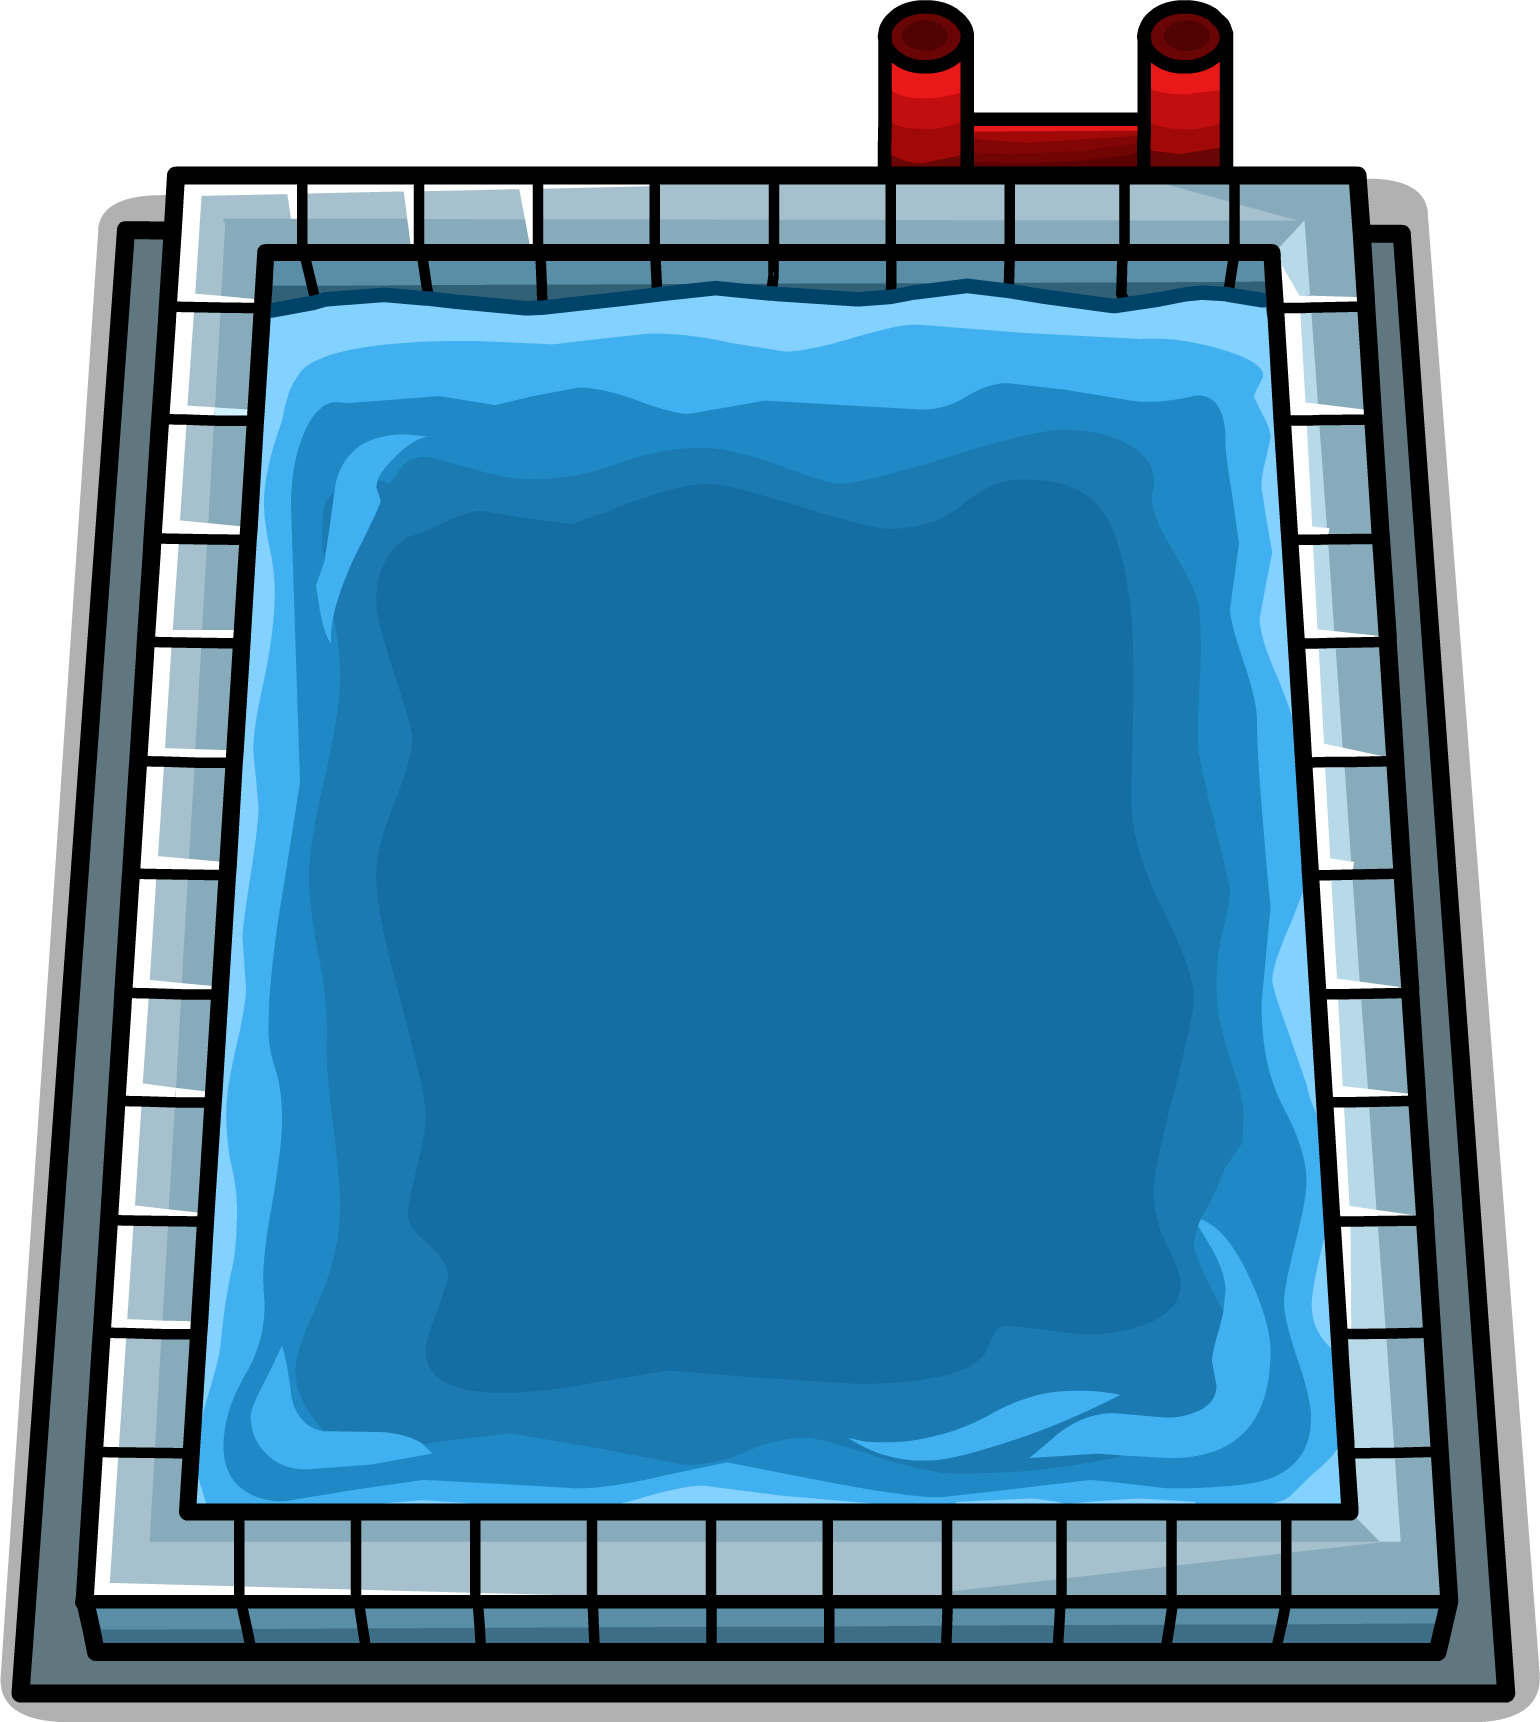 Swimming group image sprite. House clipart pool